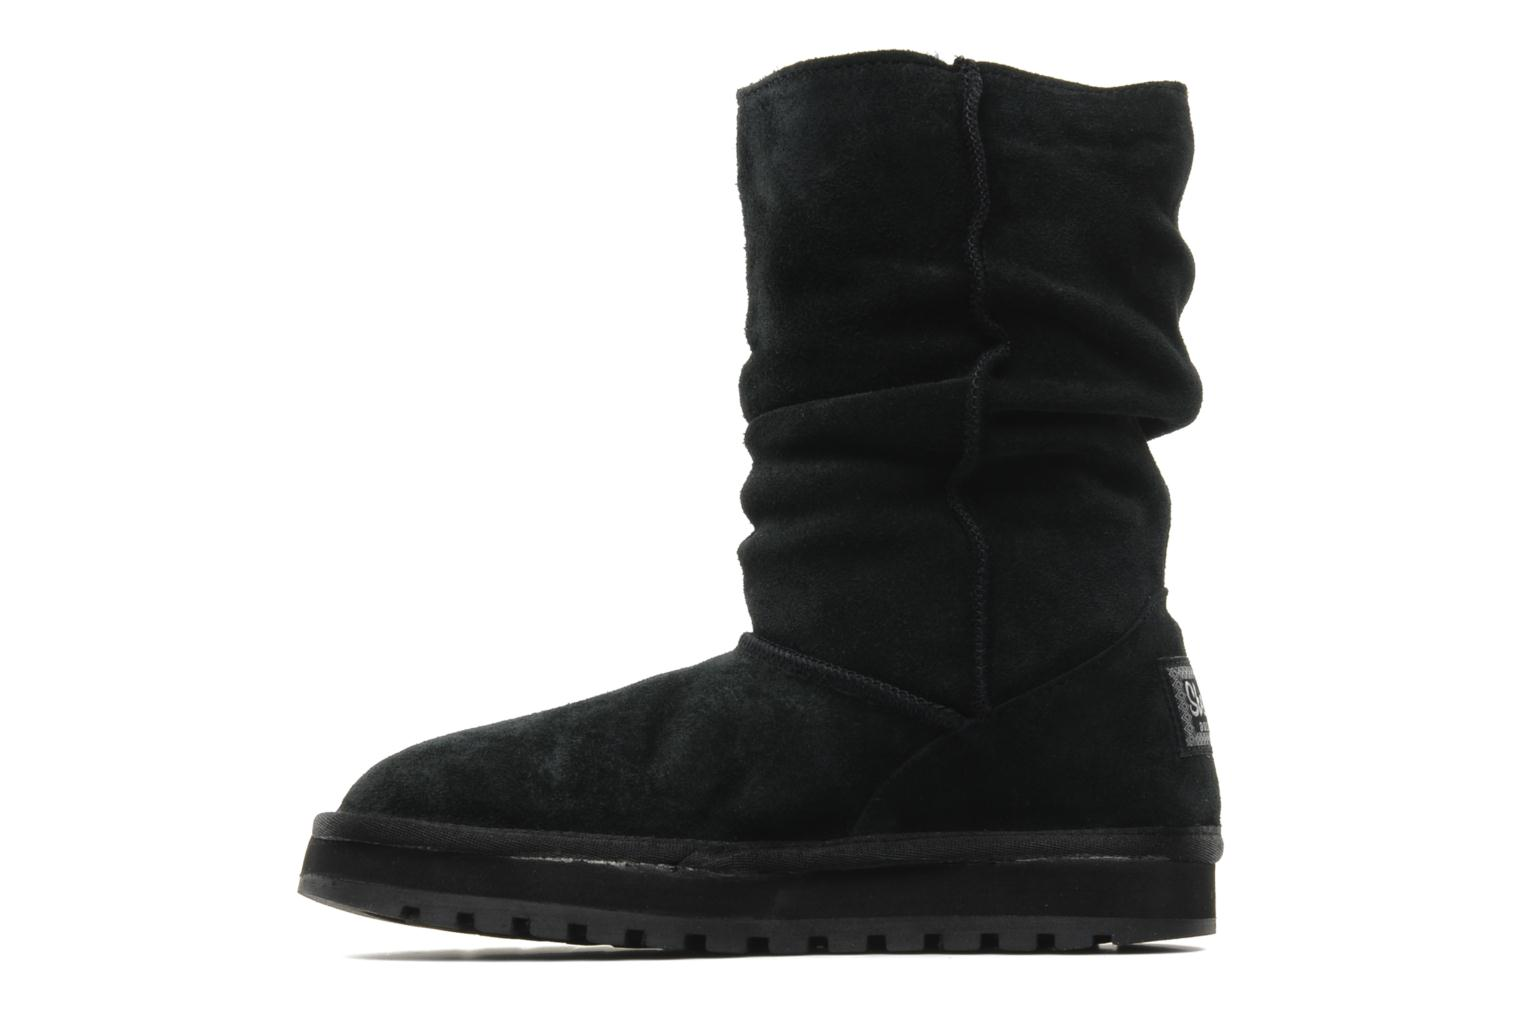 Bottines et boots Skechers Keepsakes Freezing Temps 47221 Noir vue face